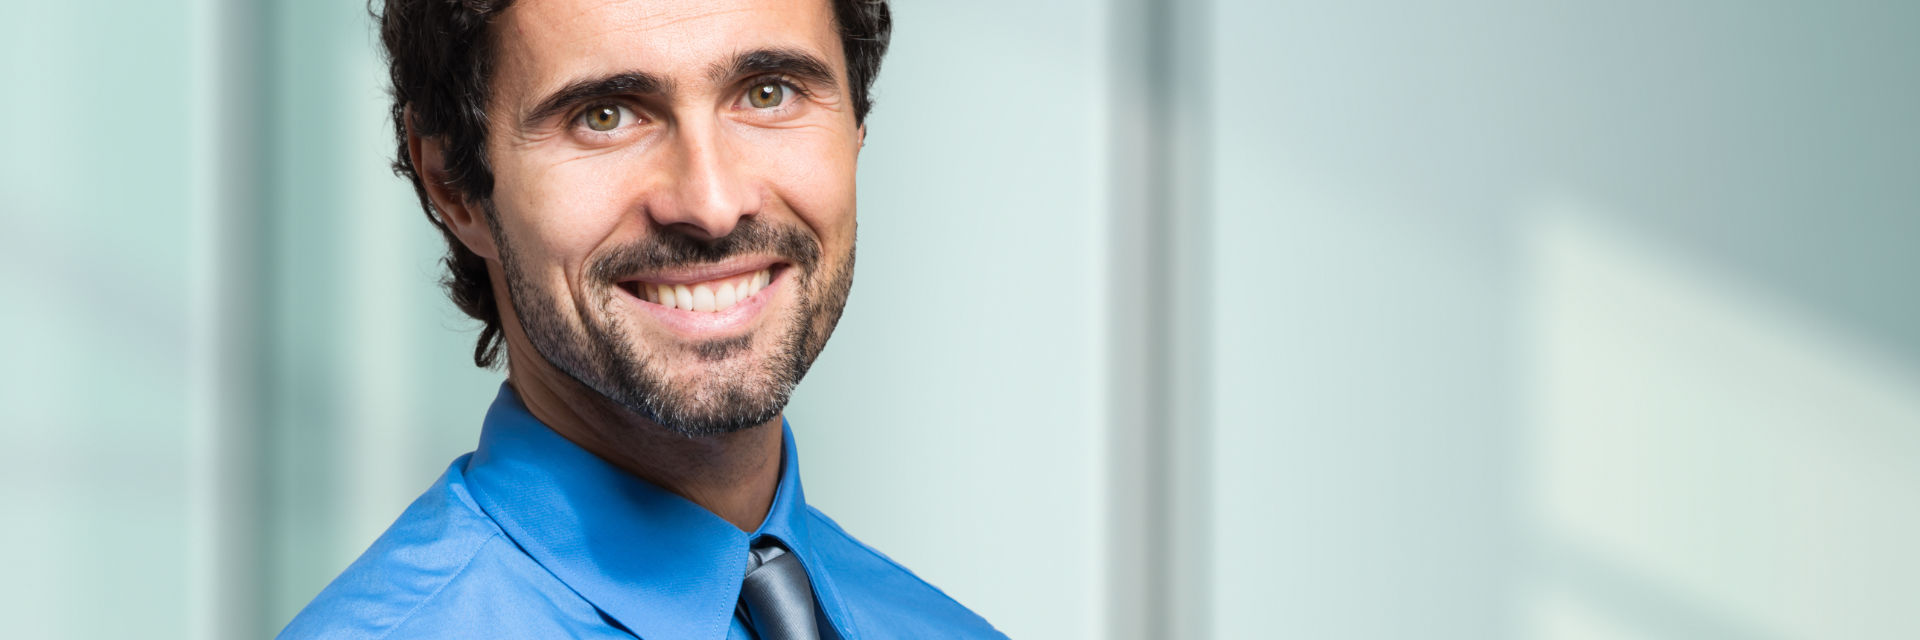 A cheerful middle-aged businessman showing nice white teeth in his smile.